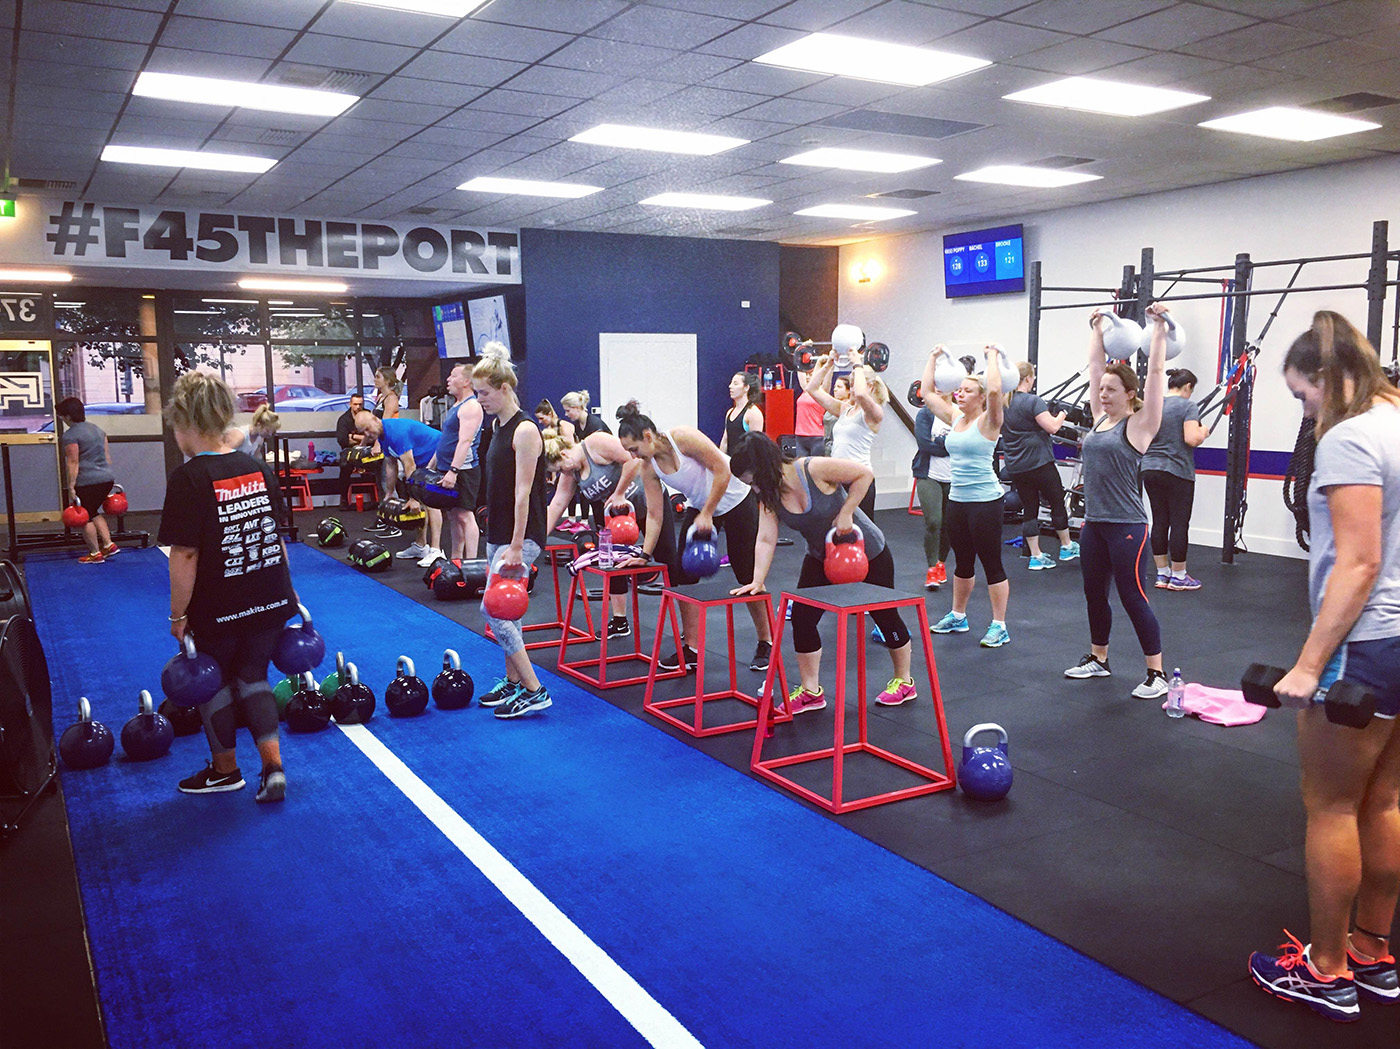 Gyms largs bay call f training on